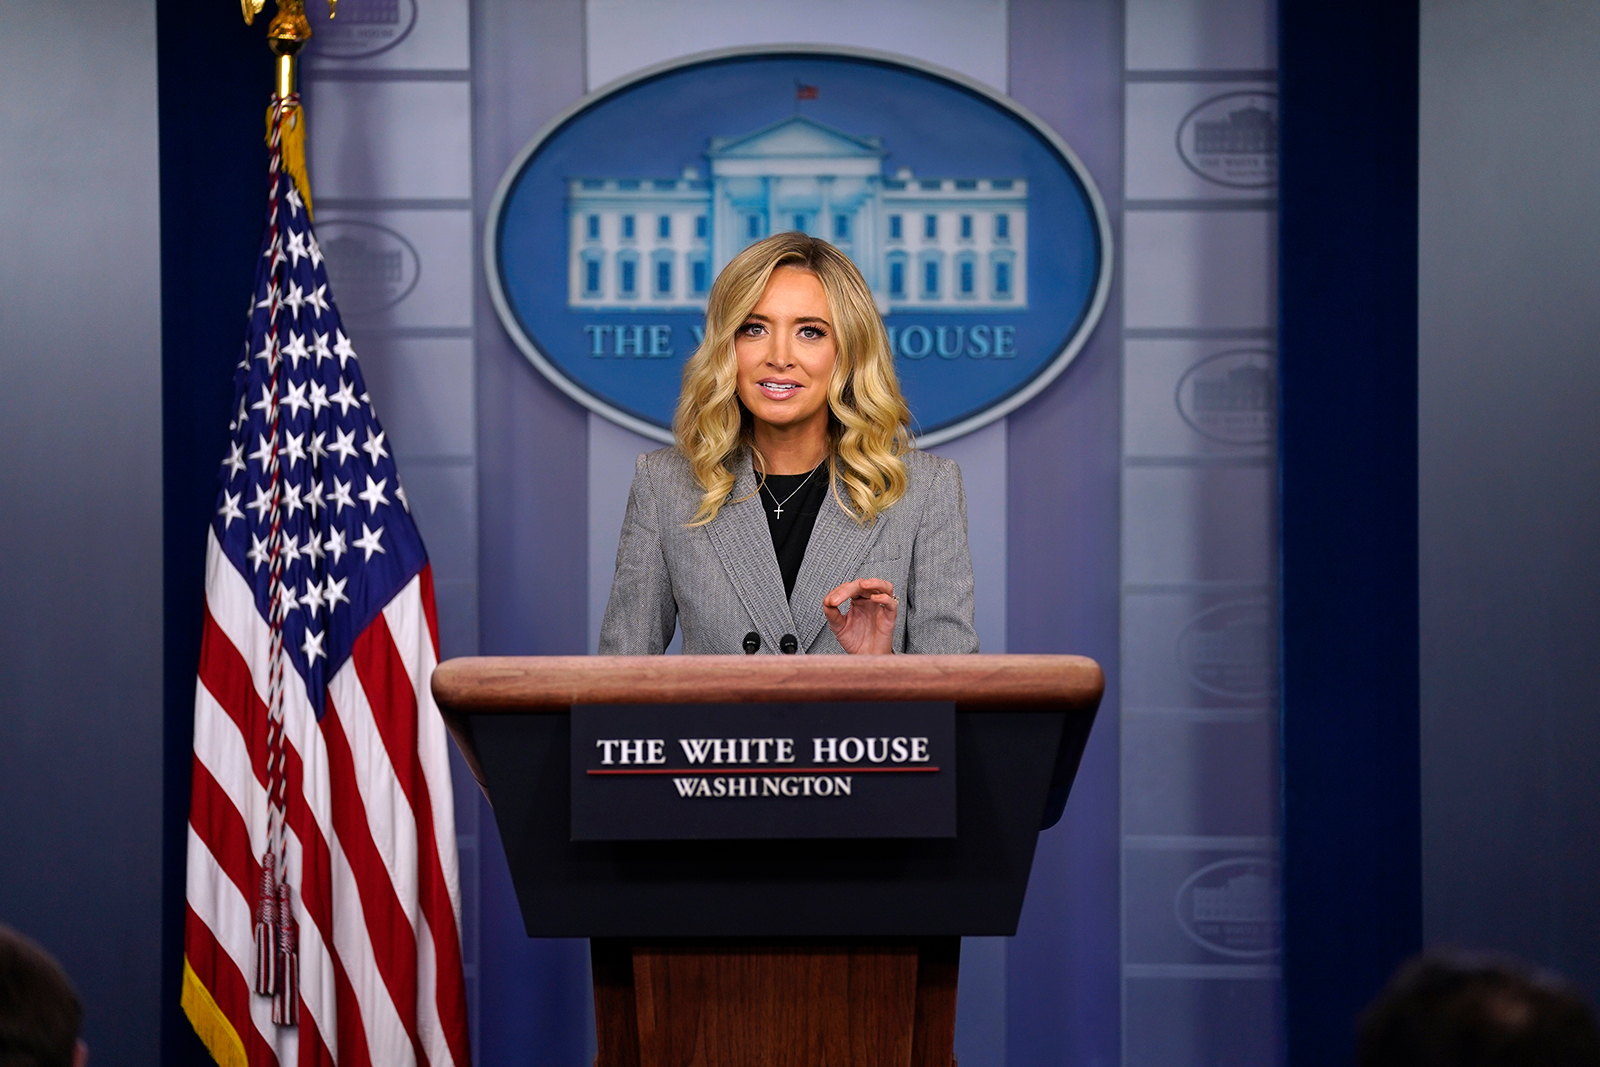 White House press secretary Kayleigh McEnany speaks during a press briefing at the White House on Friday, May 8, in Washington DC.